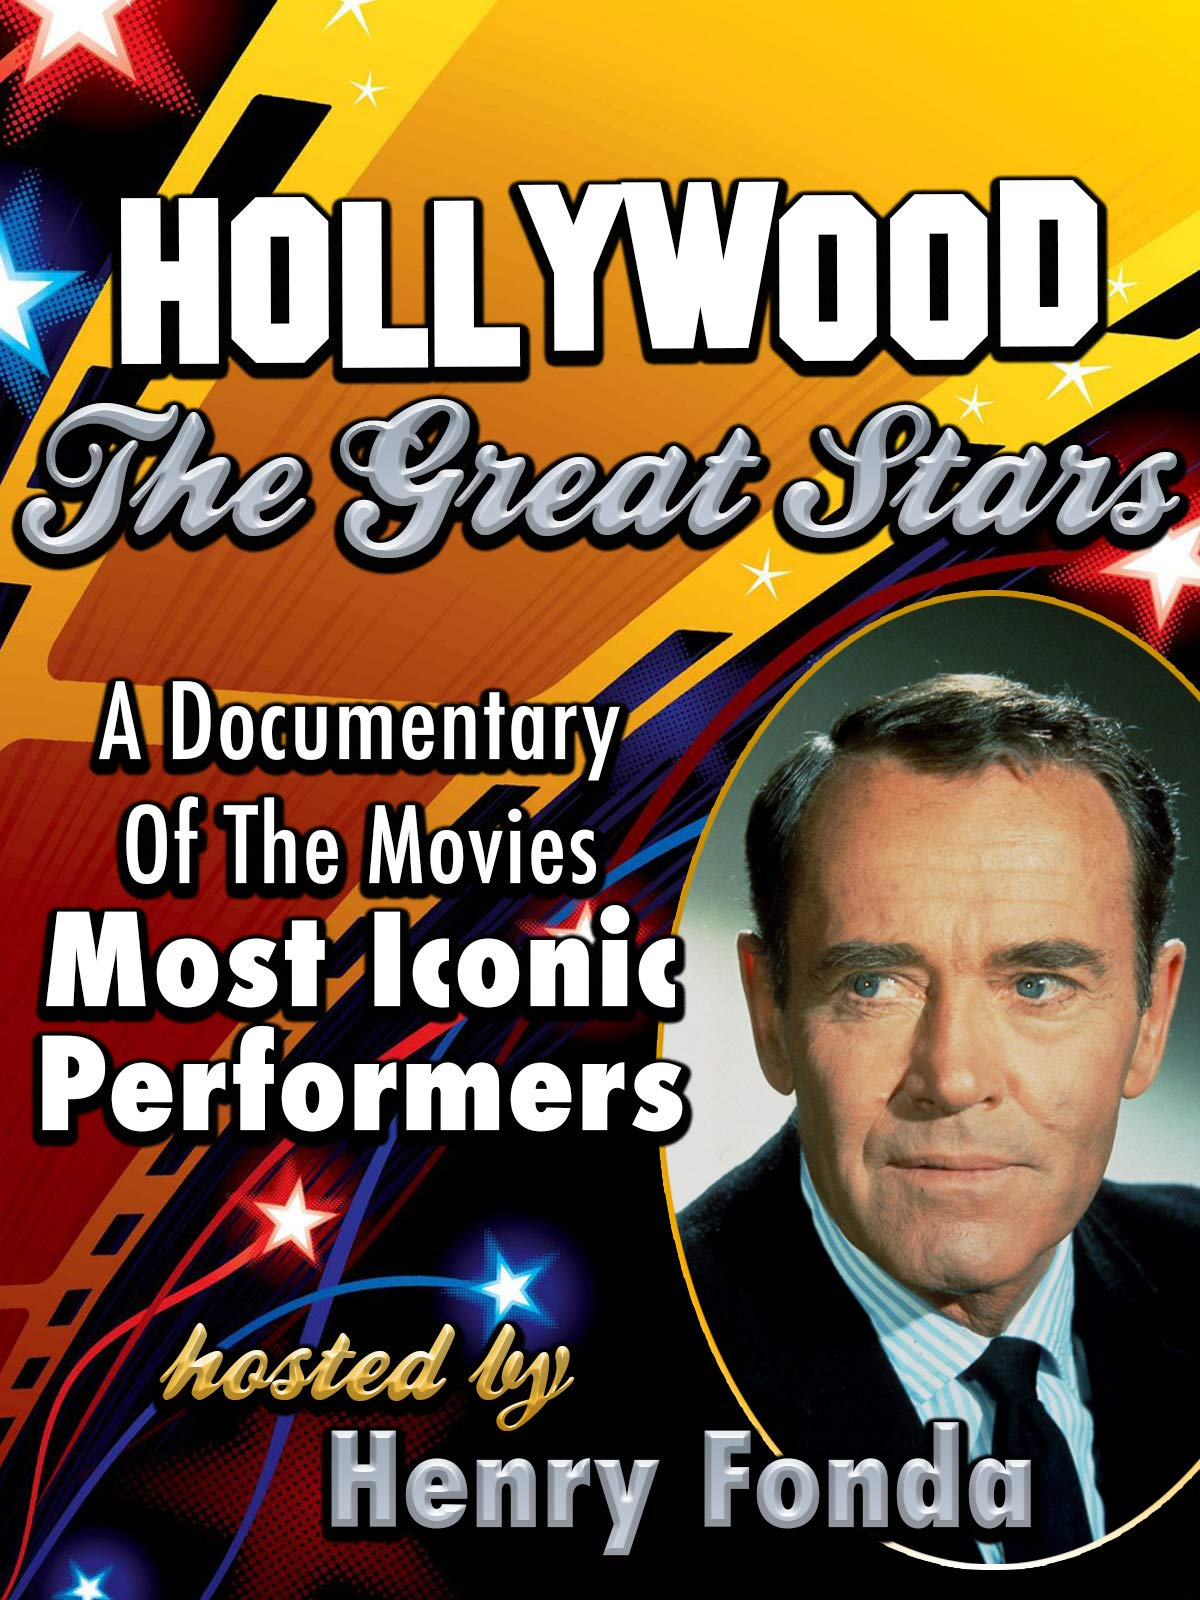 Hollywood, The Great Stars - Hosted By Henry Fonda - A Documentary Of The Movies Most Iconic Performers